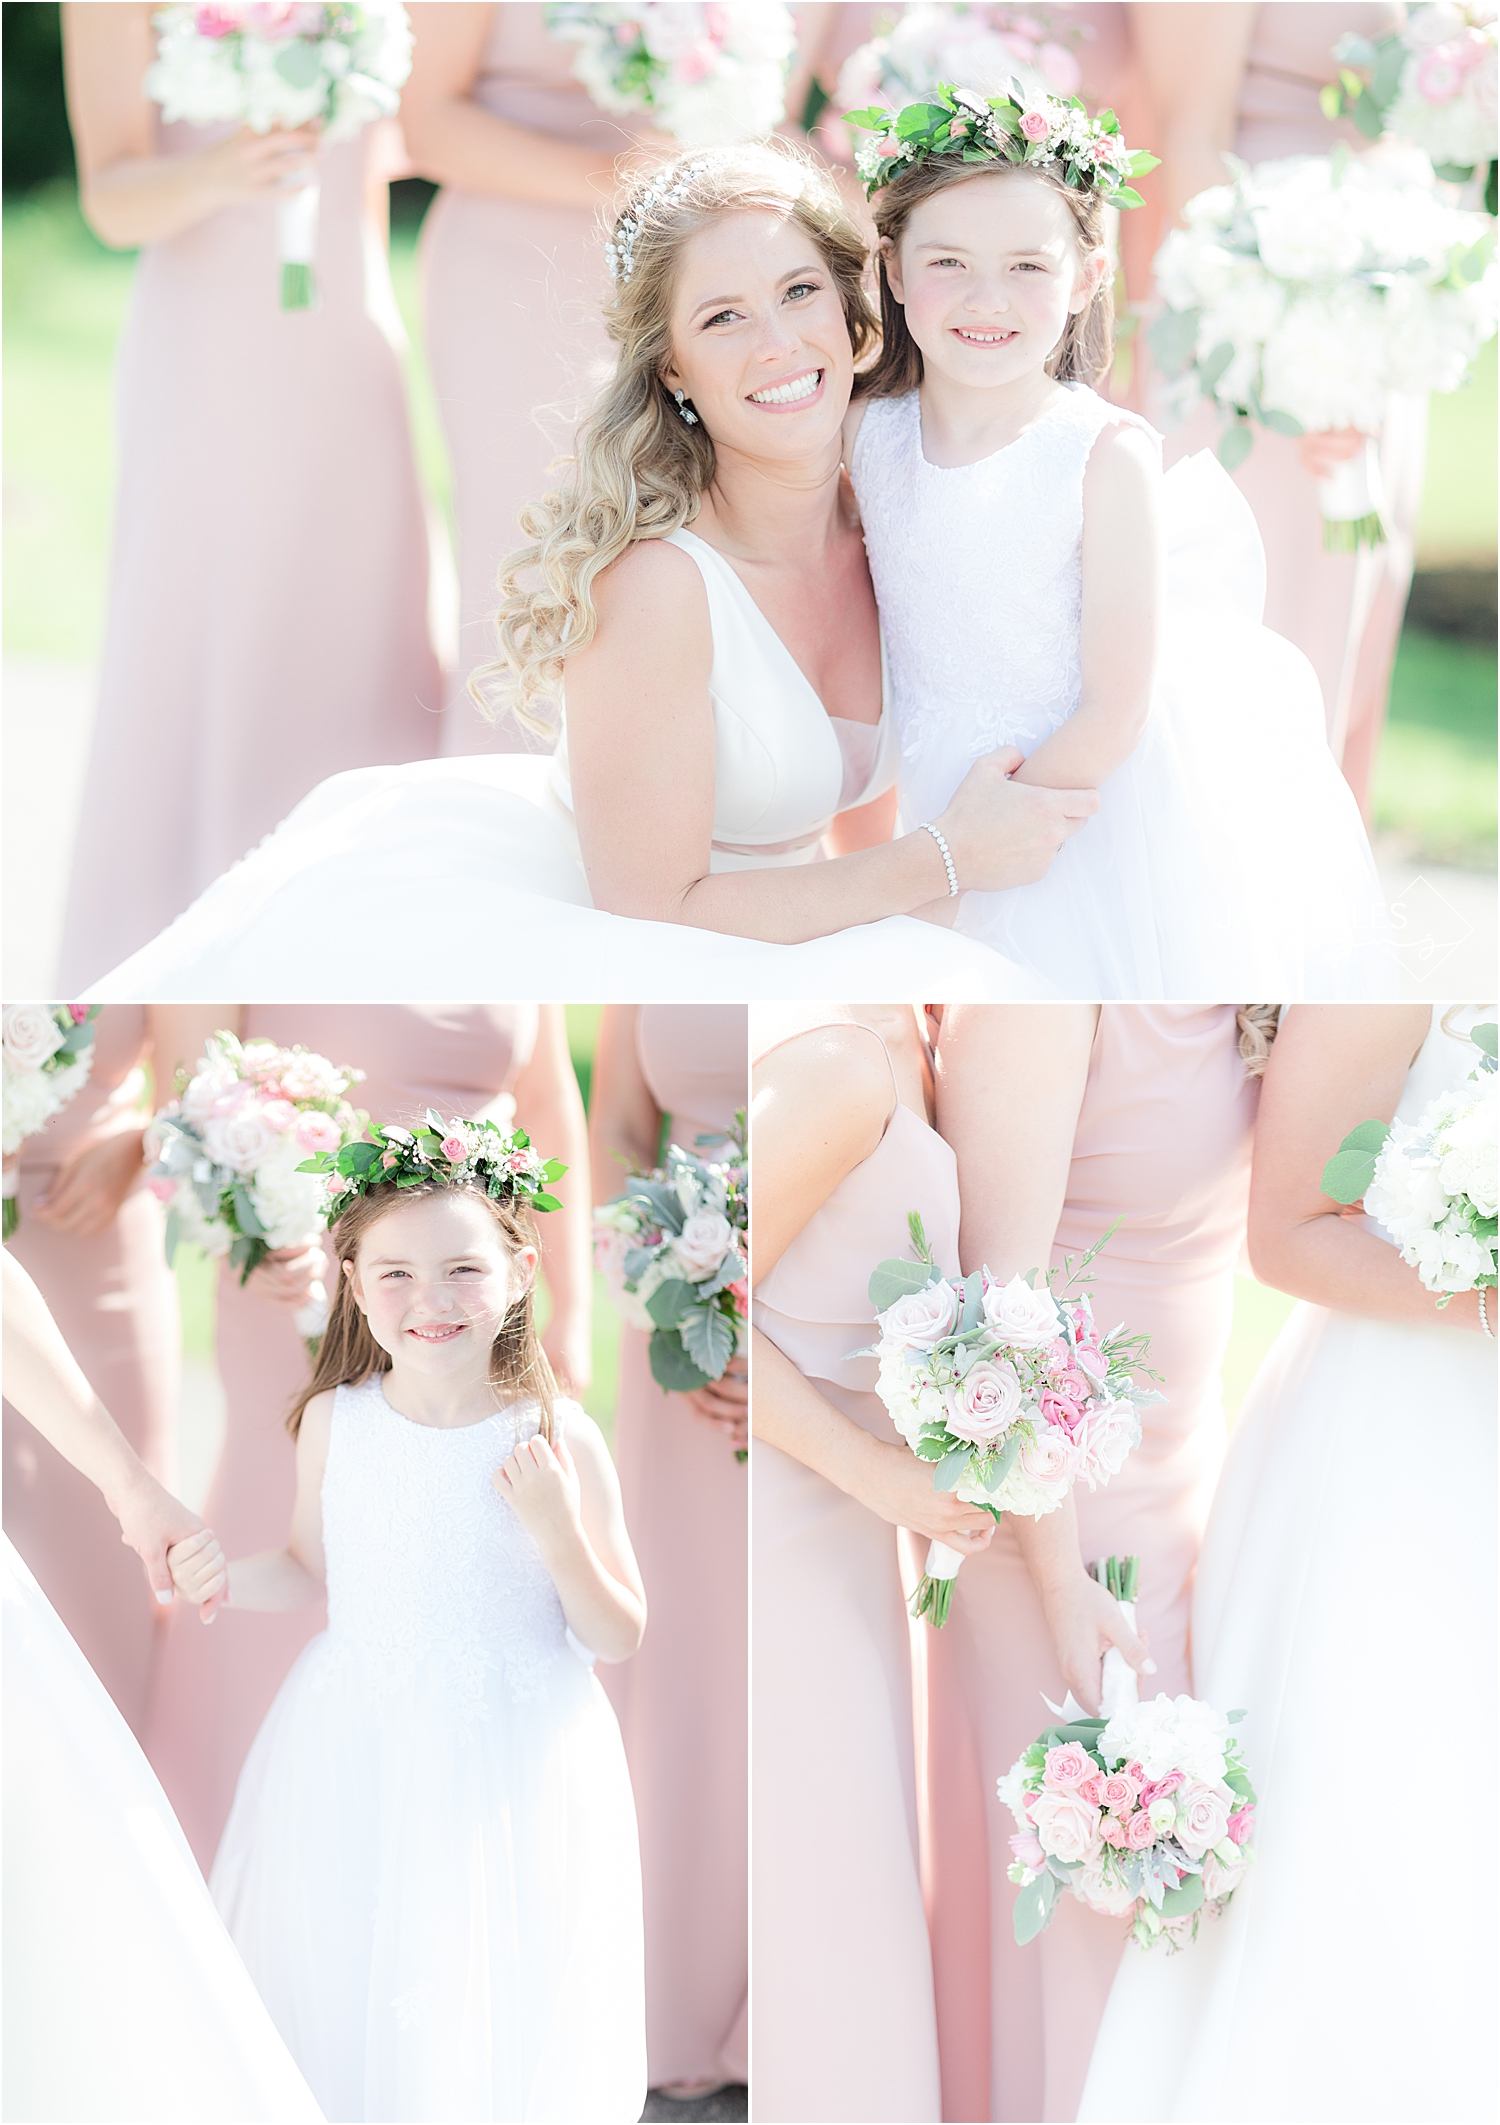 bride and flower girl in pink dresses at north jersey country club wedding